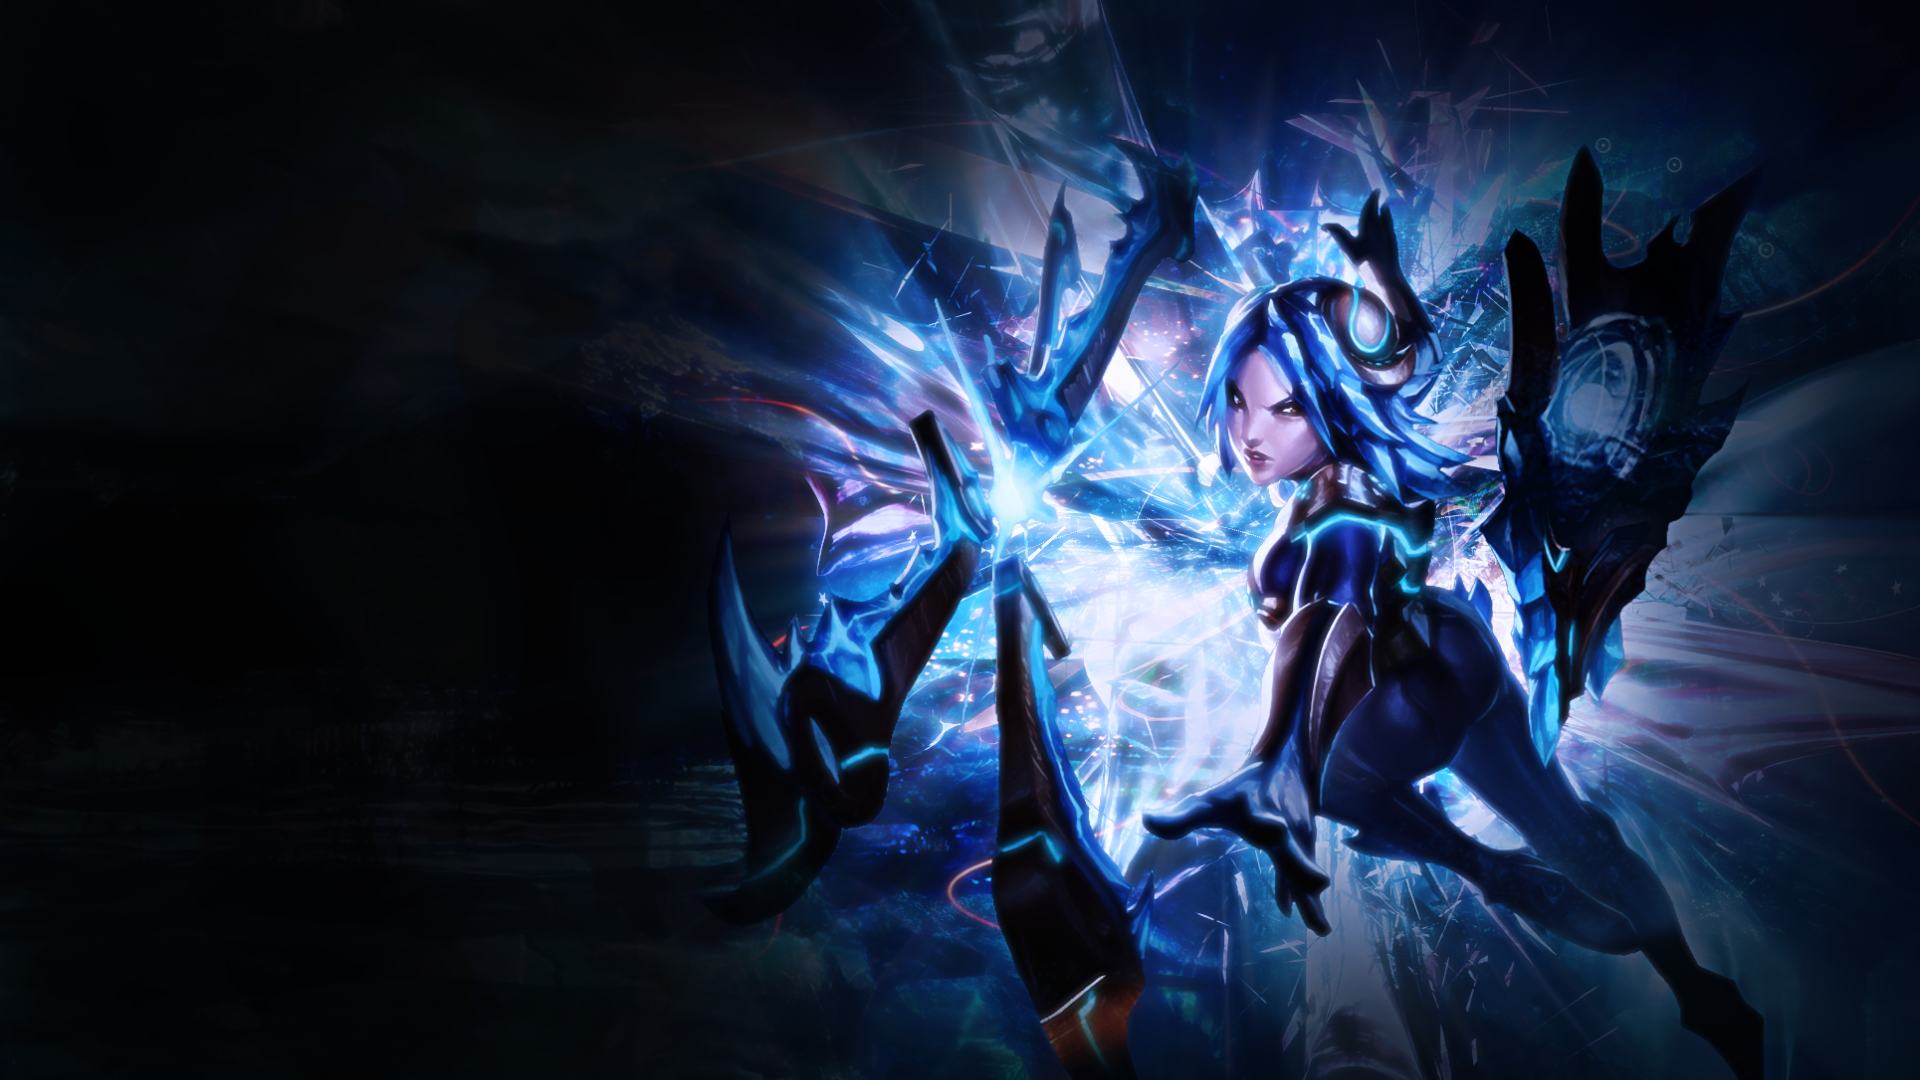 Free Download Irelia Wallpaper League Of Legends By Skeptec